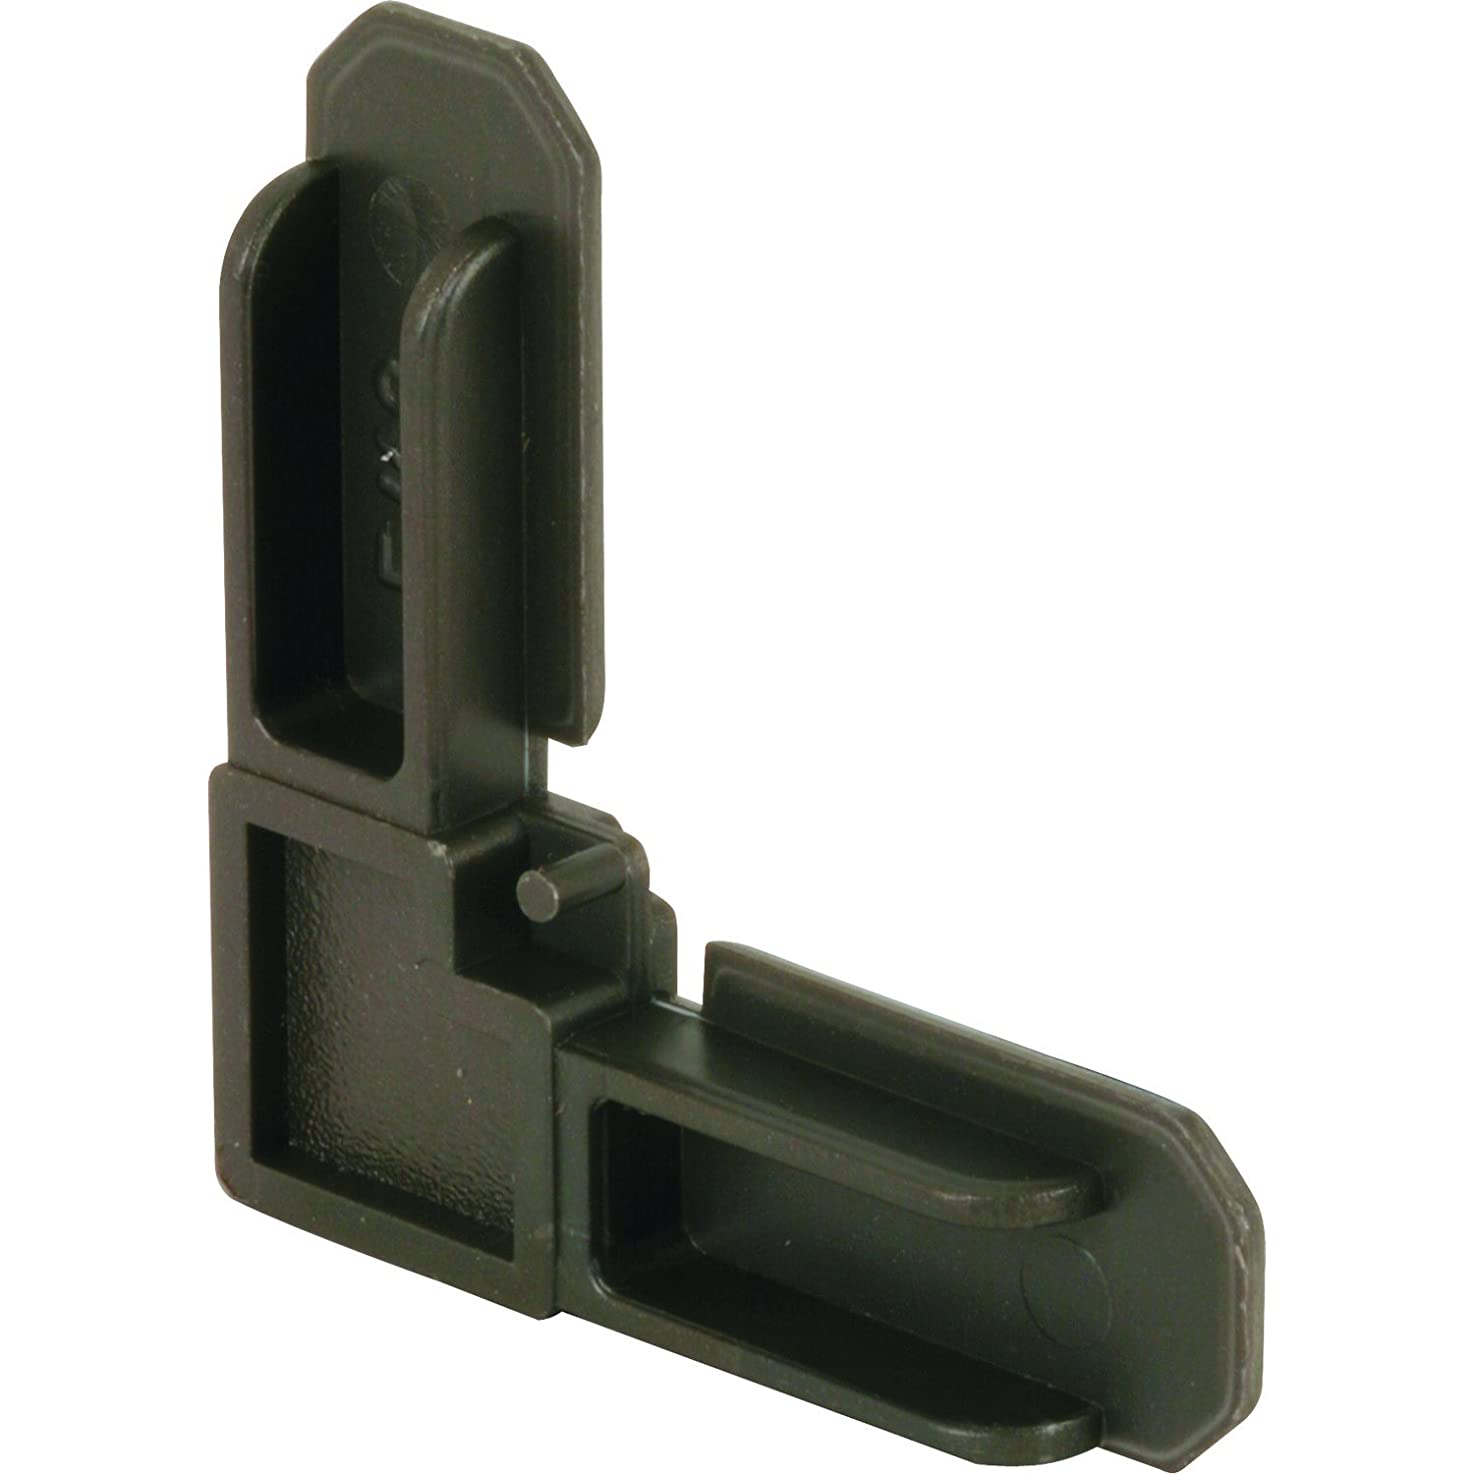 Prime-Line MP7728-50 Screen Frame Corner, 5/16-Inch x 3/4-Inch, Bronze Plastic, Pack of 50, 50 Piece